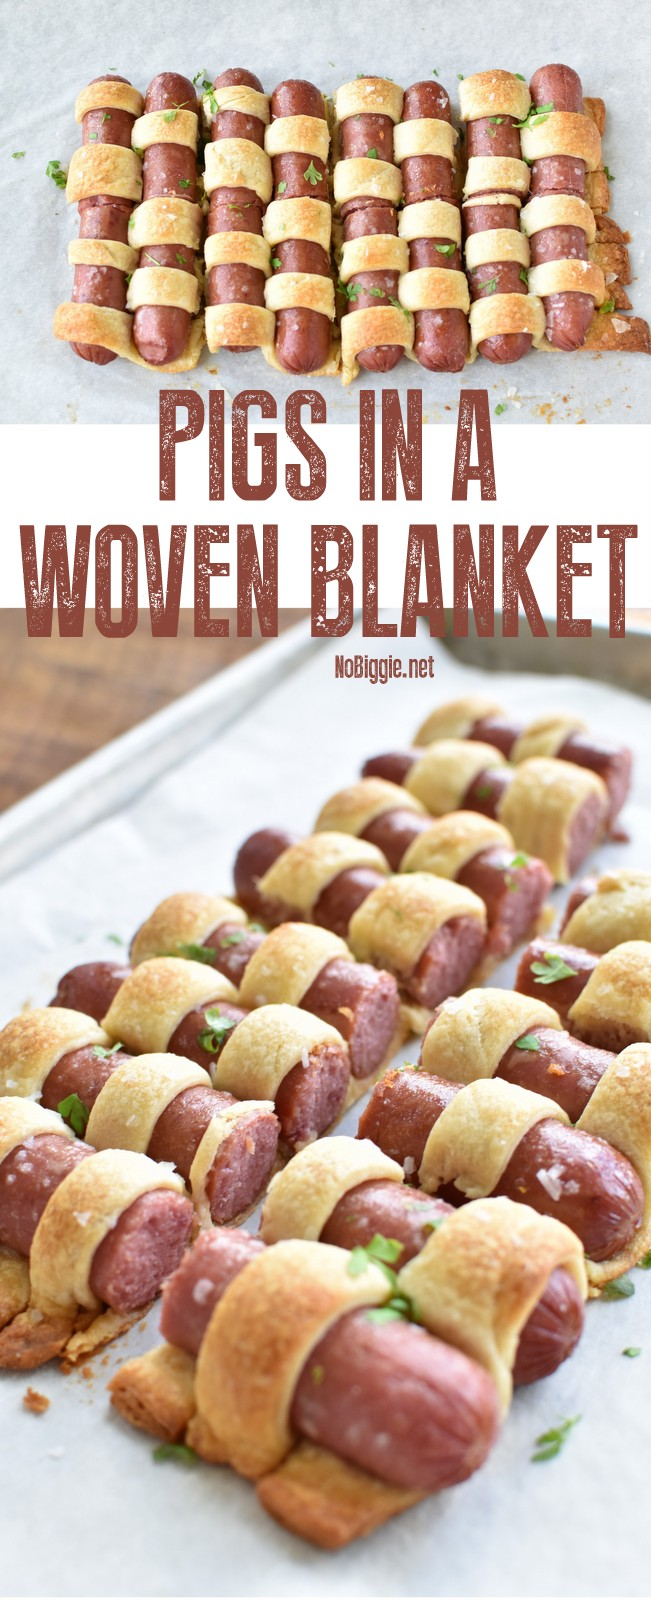 Pigs in a Woven Blanket - A classic served in a fun way! #pigsinablanket #appetizers #classicappetizers #easyrecipes #classicrecipes